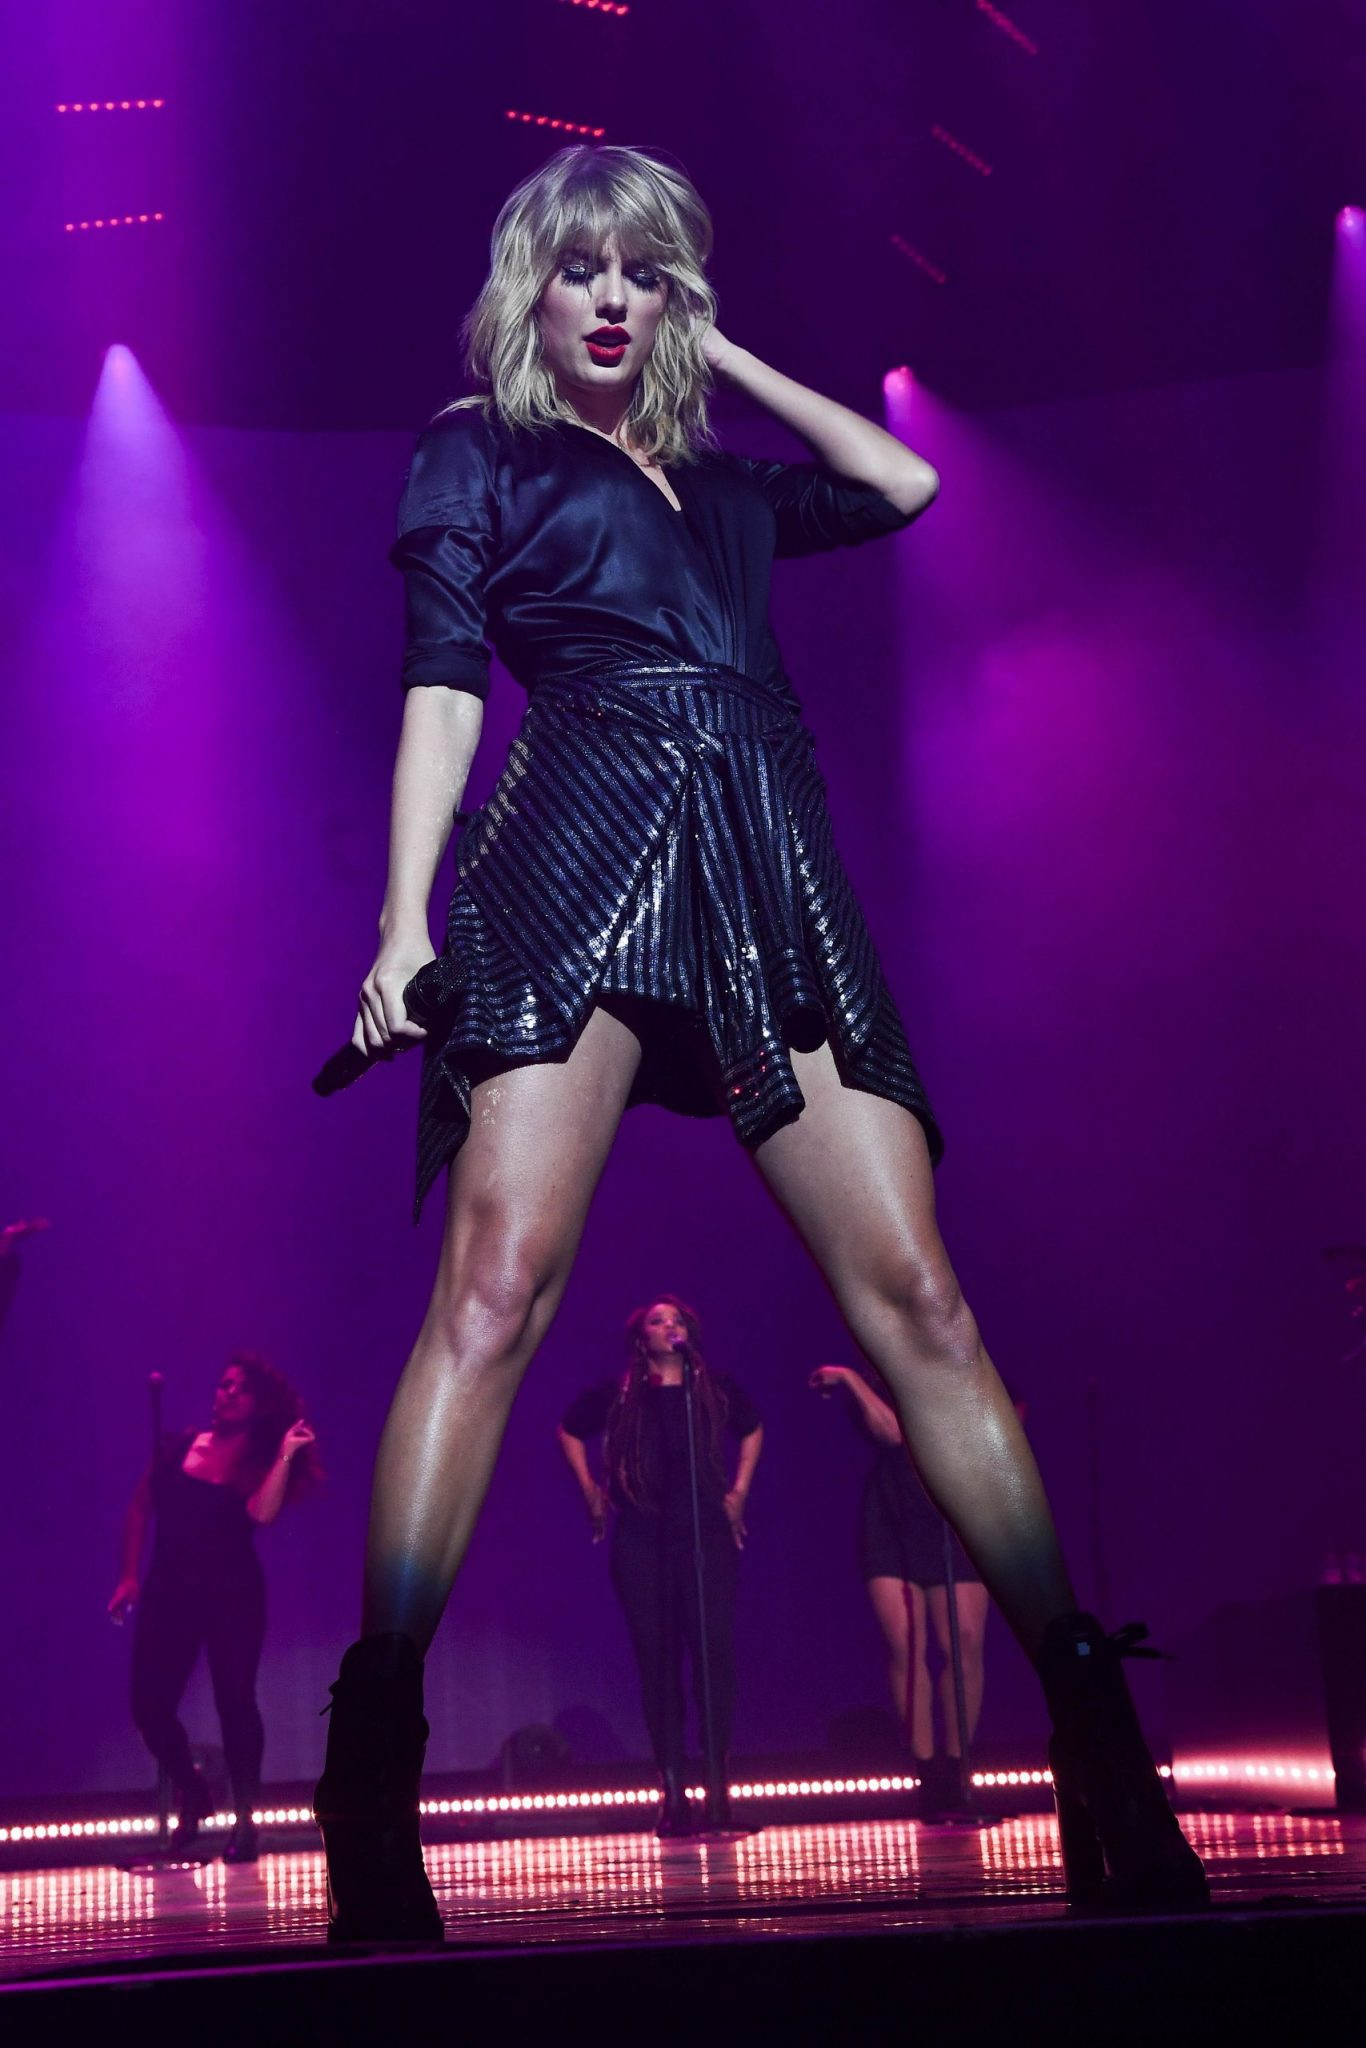 PARIS, FRANCE - SEPTEMBER 09:  Taylor Swift performs during her City of Lover Concert at L'Olympia on September 9, 2019 in Paris, France. (Photo by Dave Hogan)